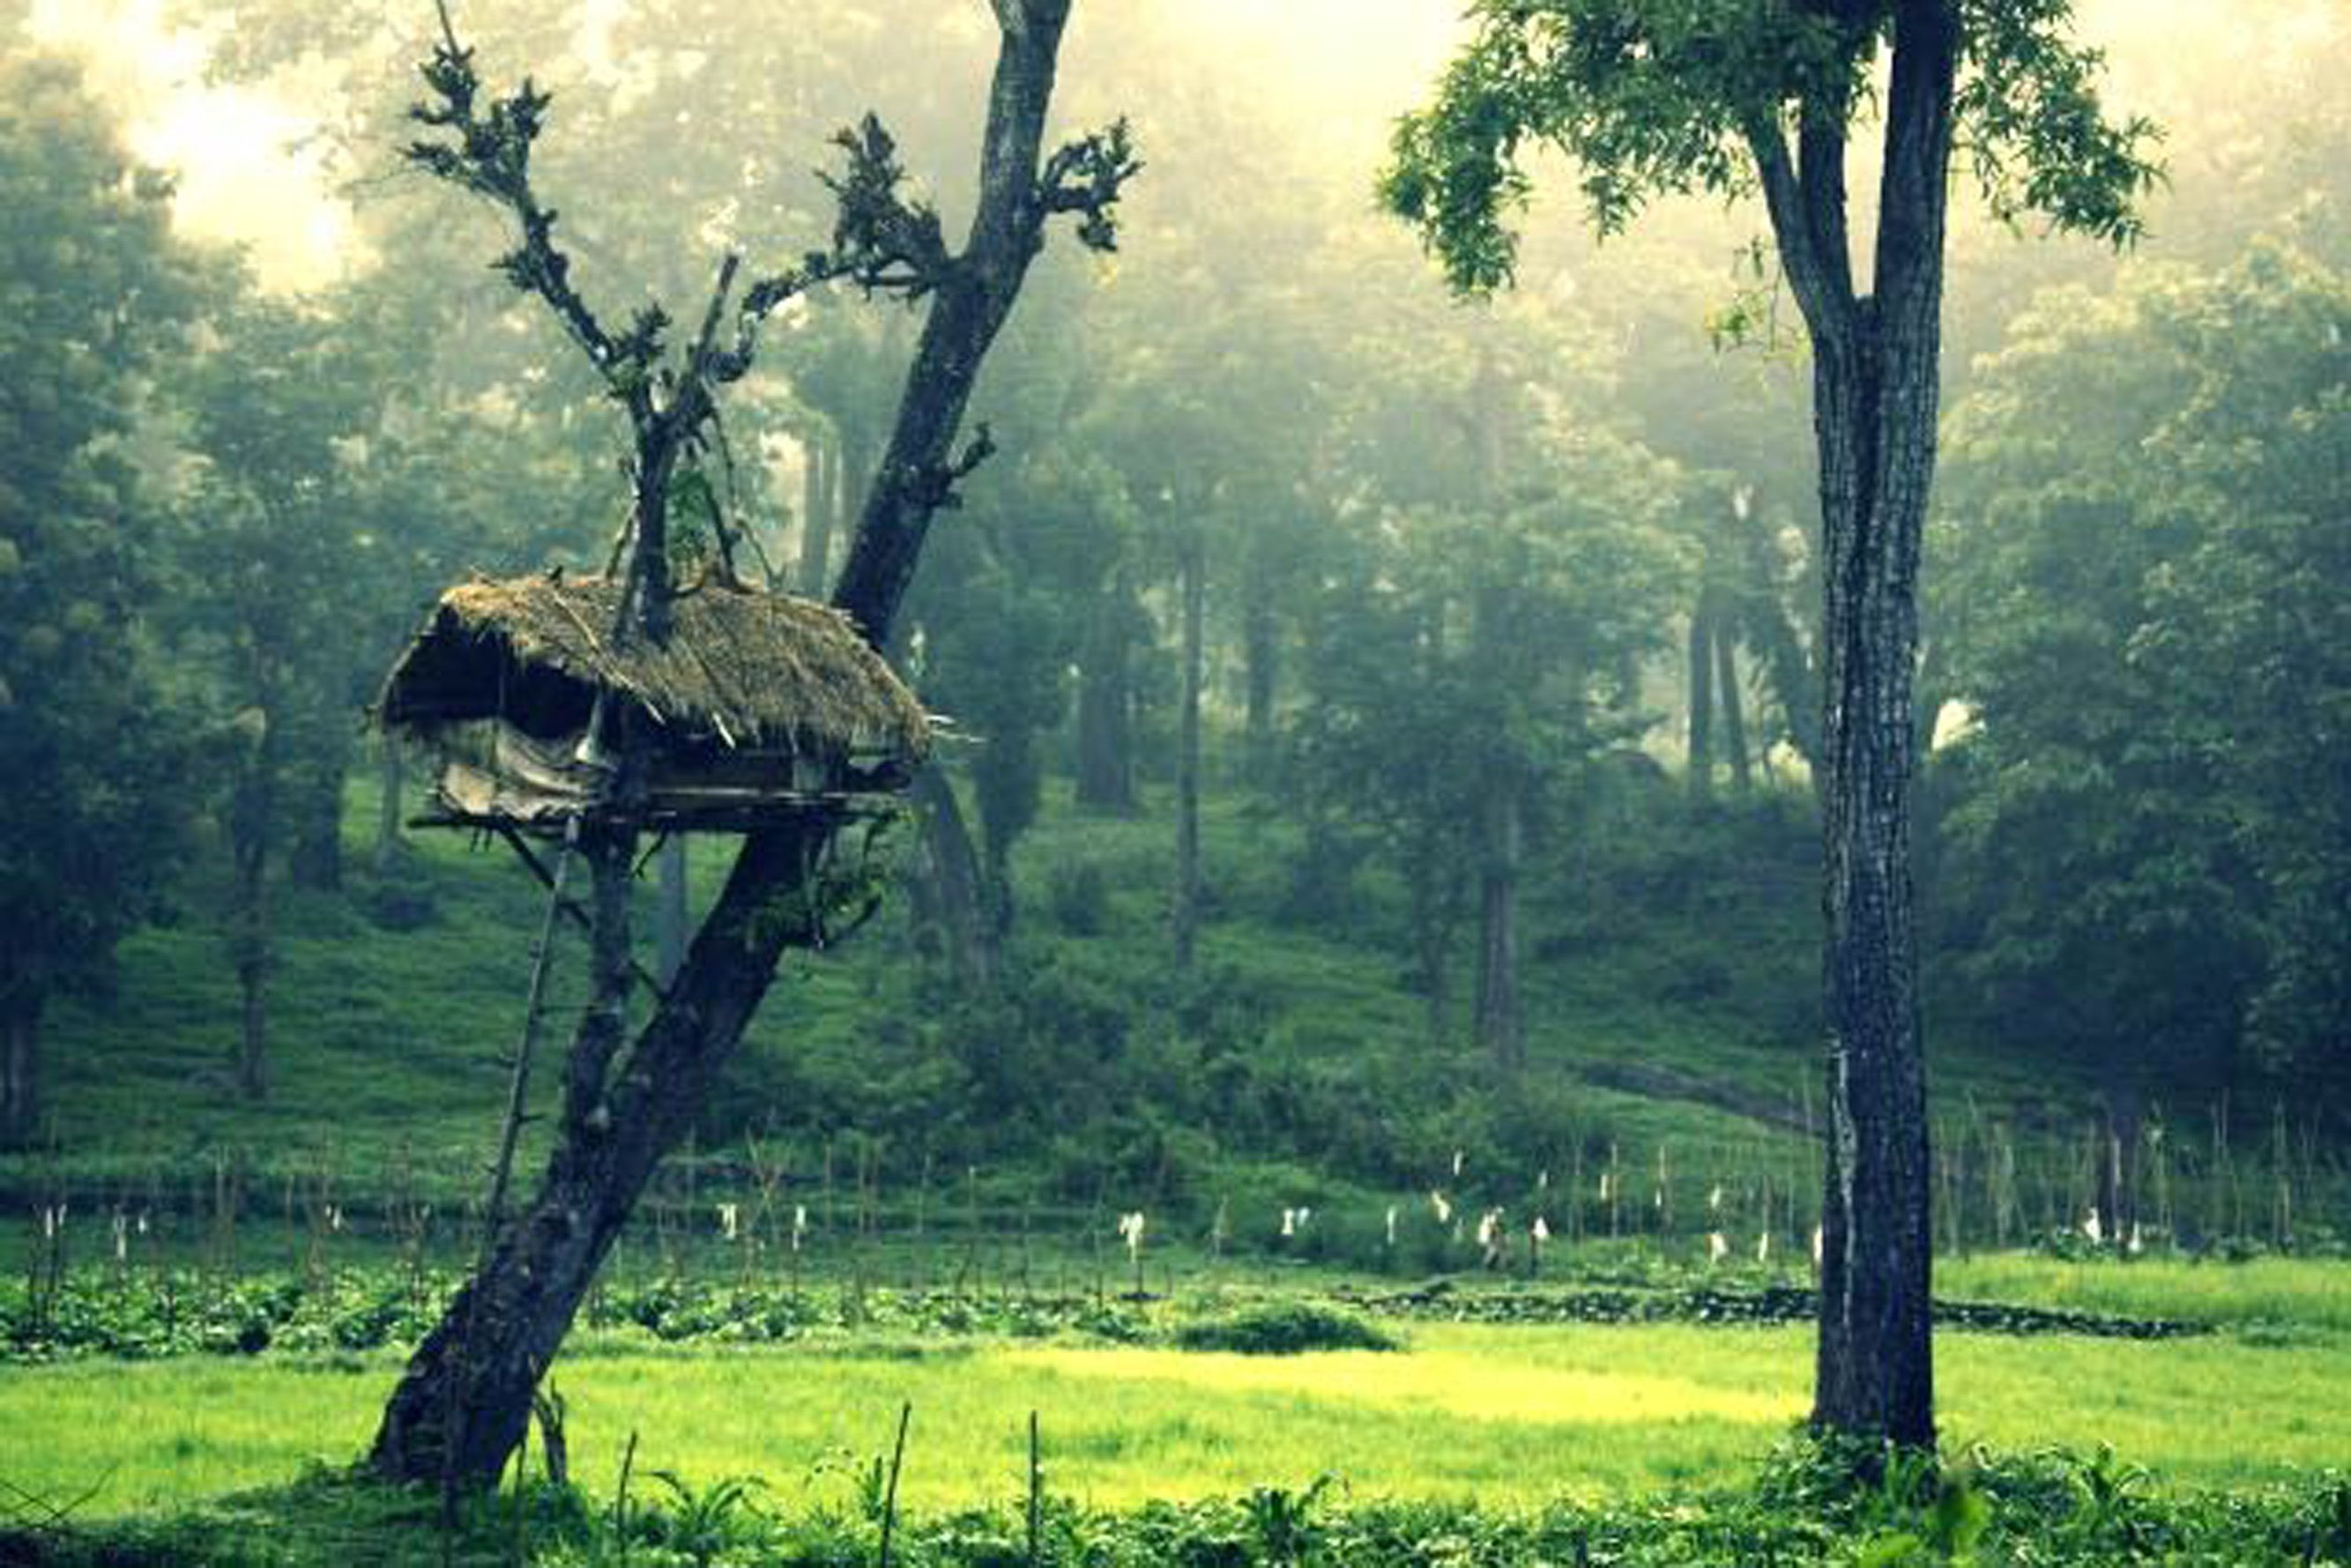 Tree houses which is called as 'Erumadam' in Malayalam is a